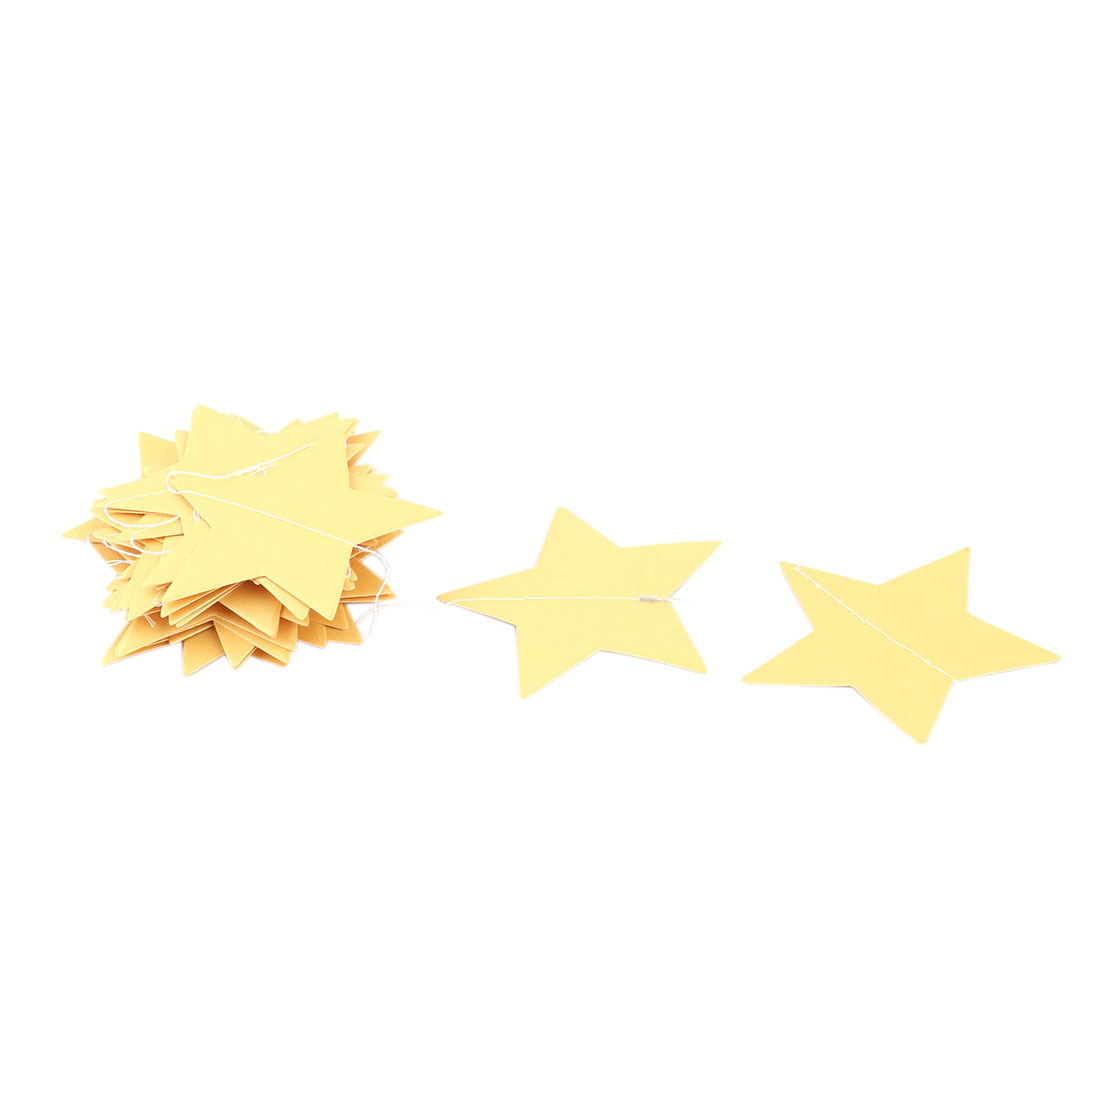 Party Decor Paper Star Shape DIY Hanging Ornament Photo Prop Bunting Banner Gold Tone